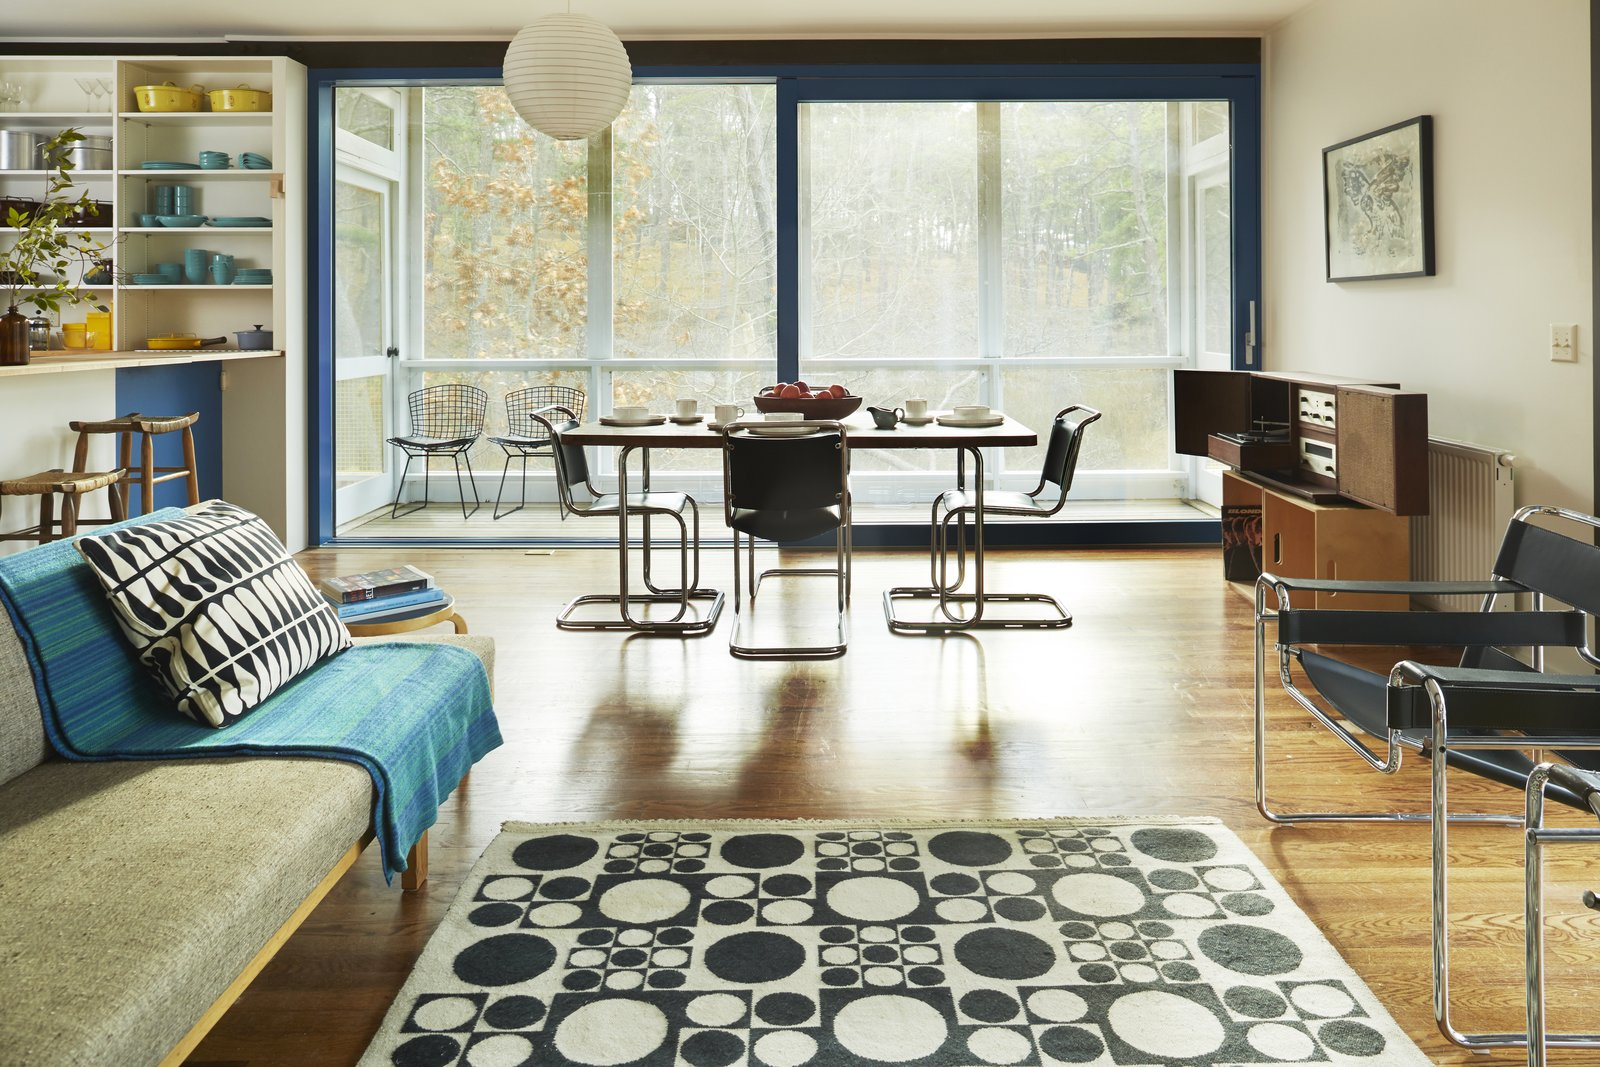 Light Hardwood Floor, Rug Floor, Media Cabinet, Sofa, Chair, Stools, Dining Room, Table, Shelves, and Pendant Lighting The living area has been lovingly restored.  Photo 7 of 9 in Experience Cape Cod Modern by Staying at the Midcentury Weidlinger House